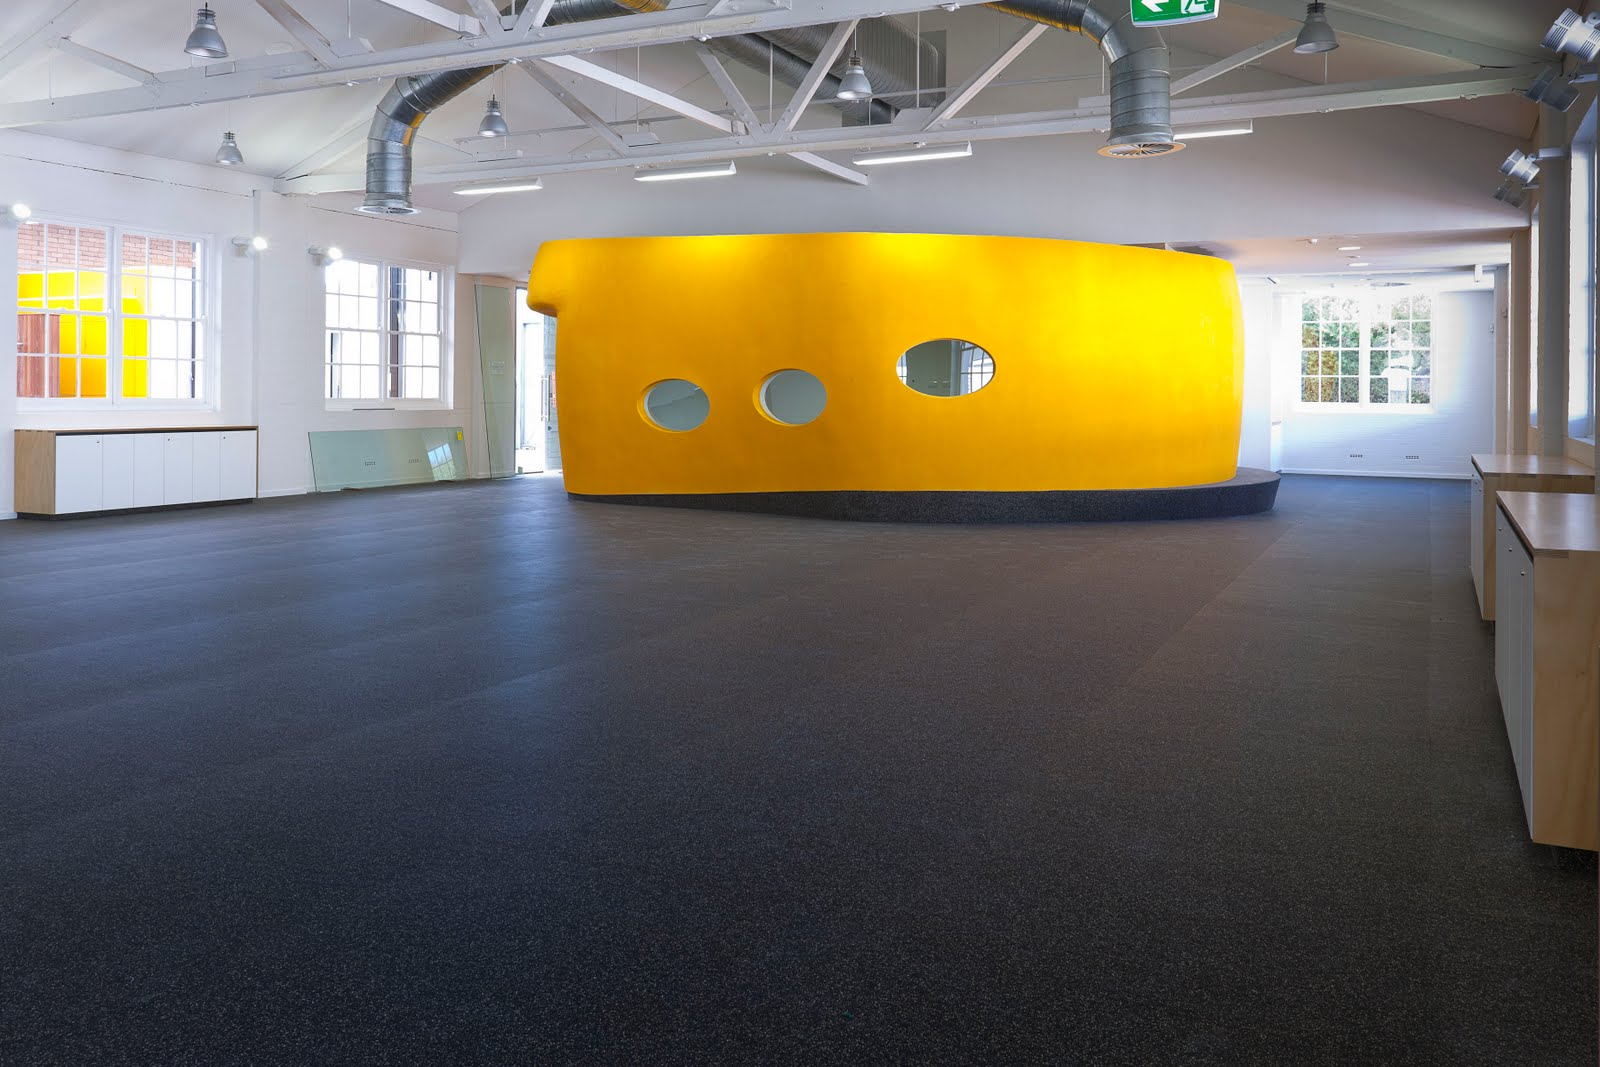 Floor mats perth wa - Rubber Matting Rubber Flooring Installed At Central Tafe Perth Wa